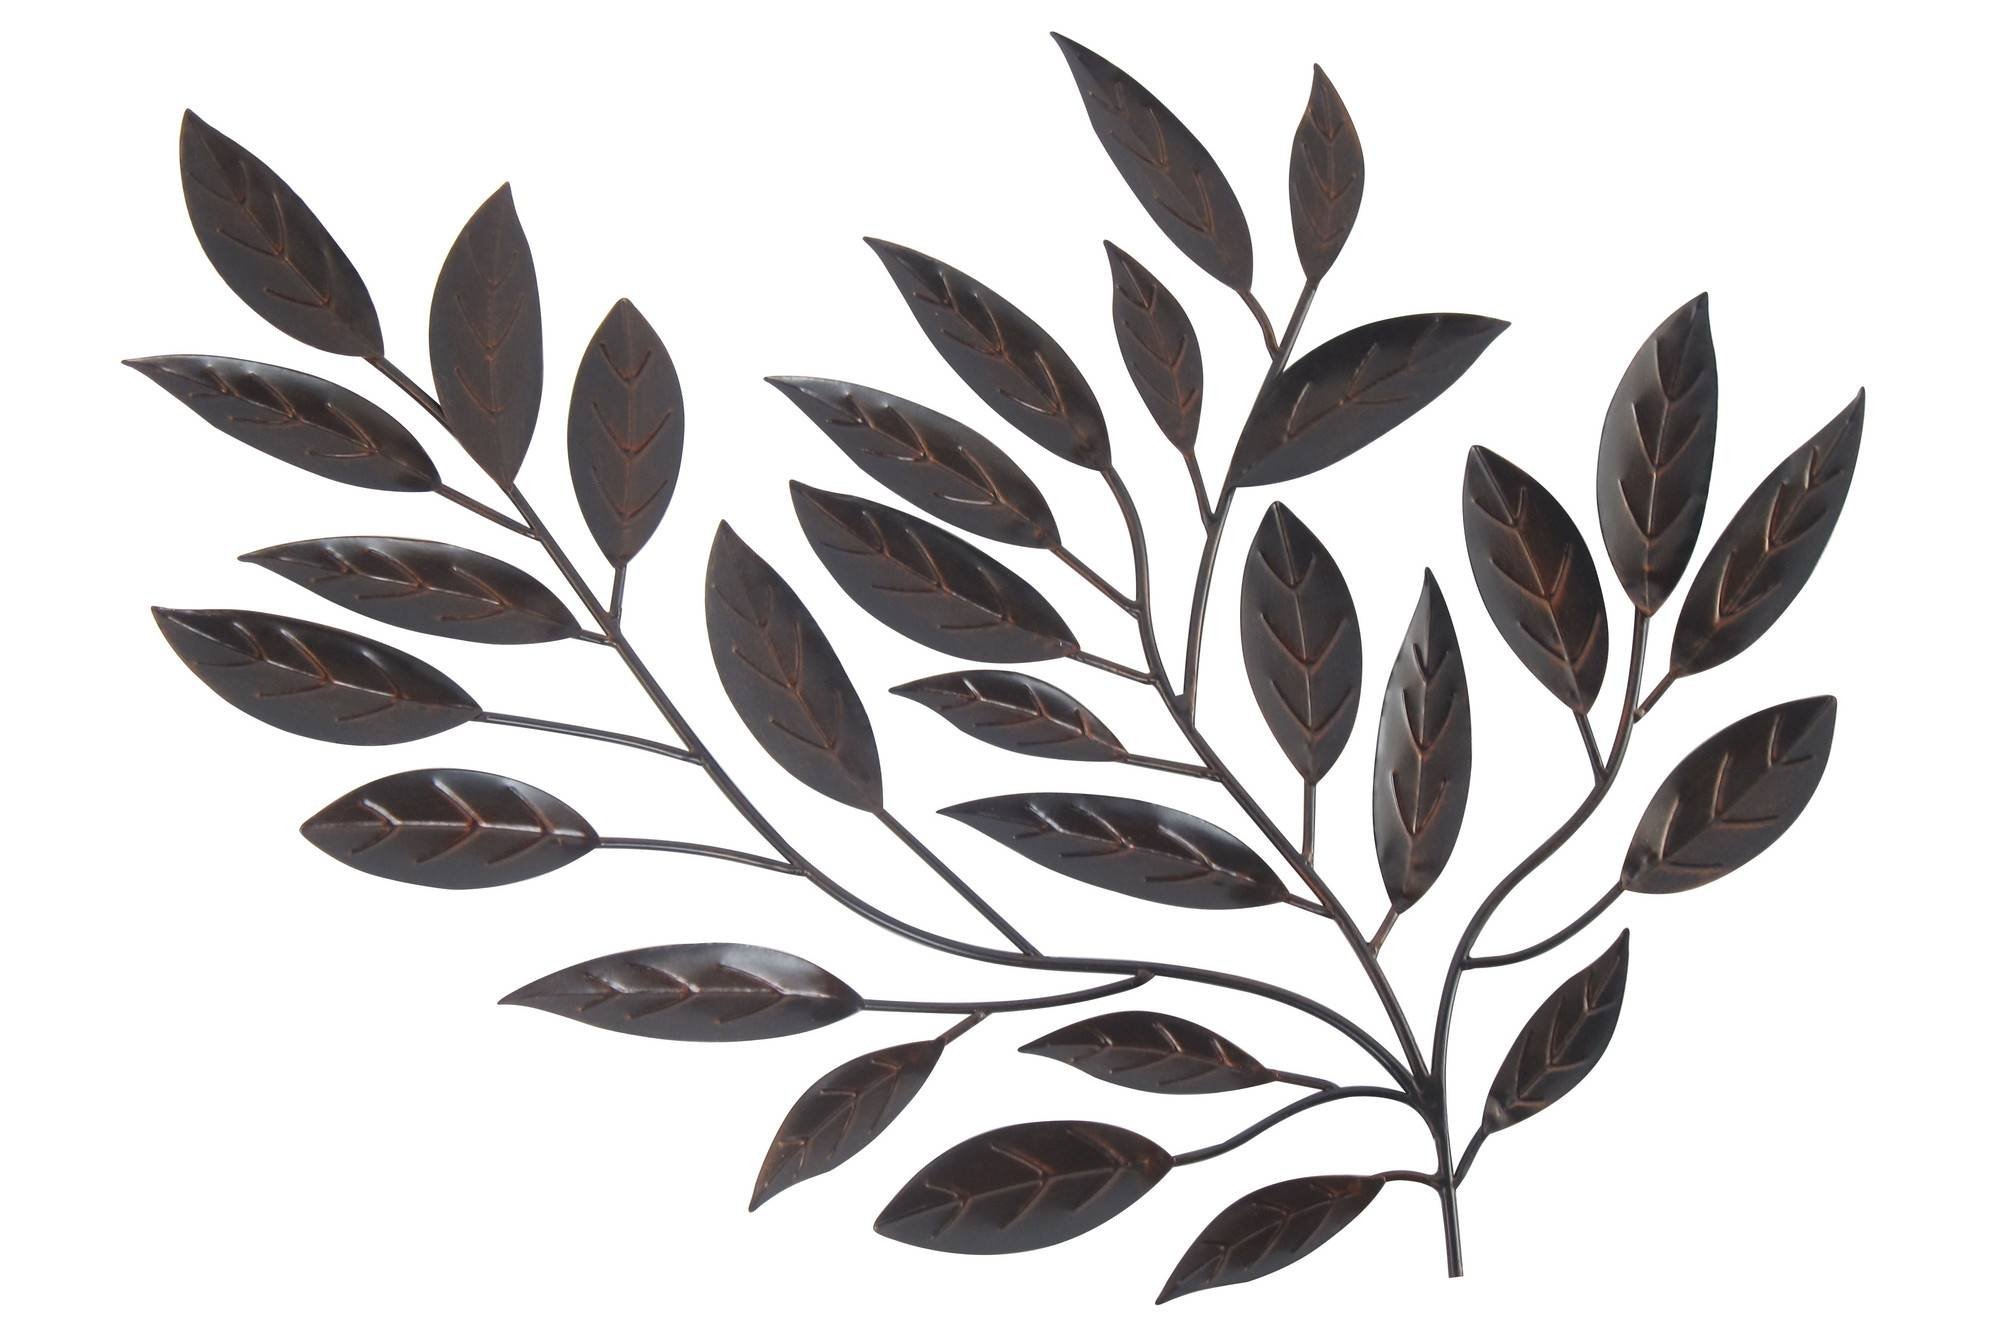 Forged Metal Leaves – Floral Metal Wall Art With 2018 Metal Wall Art Leaves (View 4 of 20)